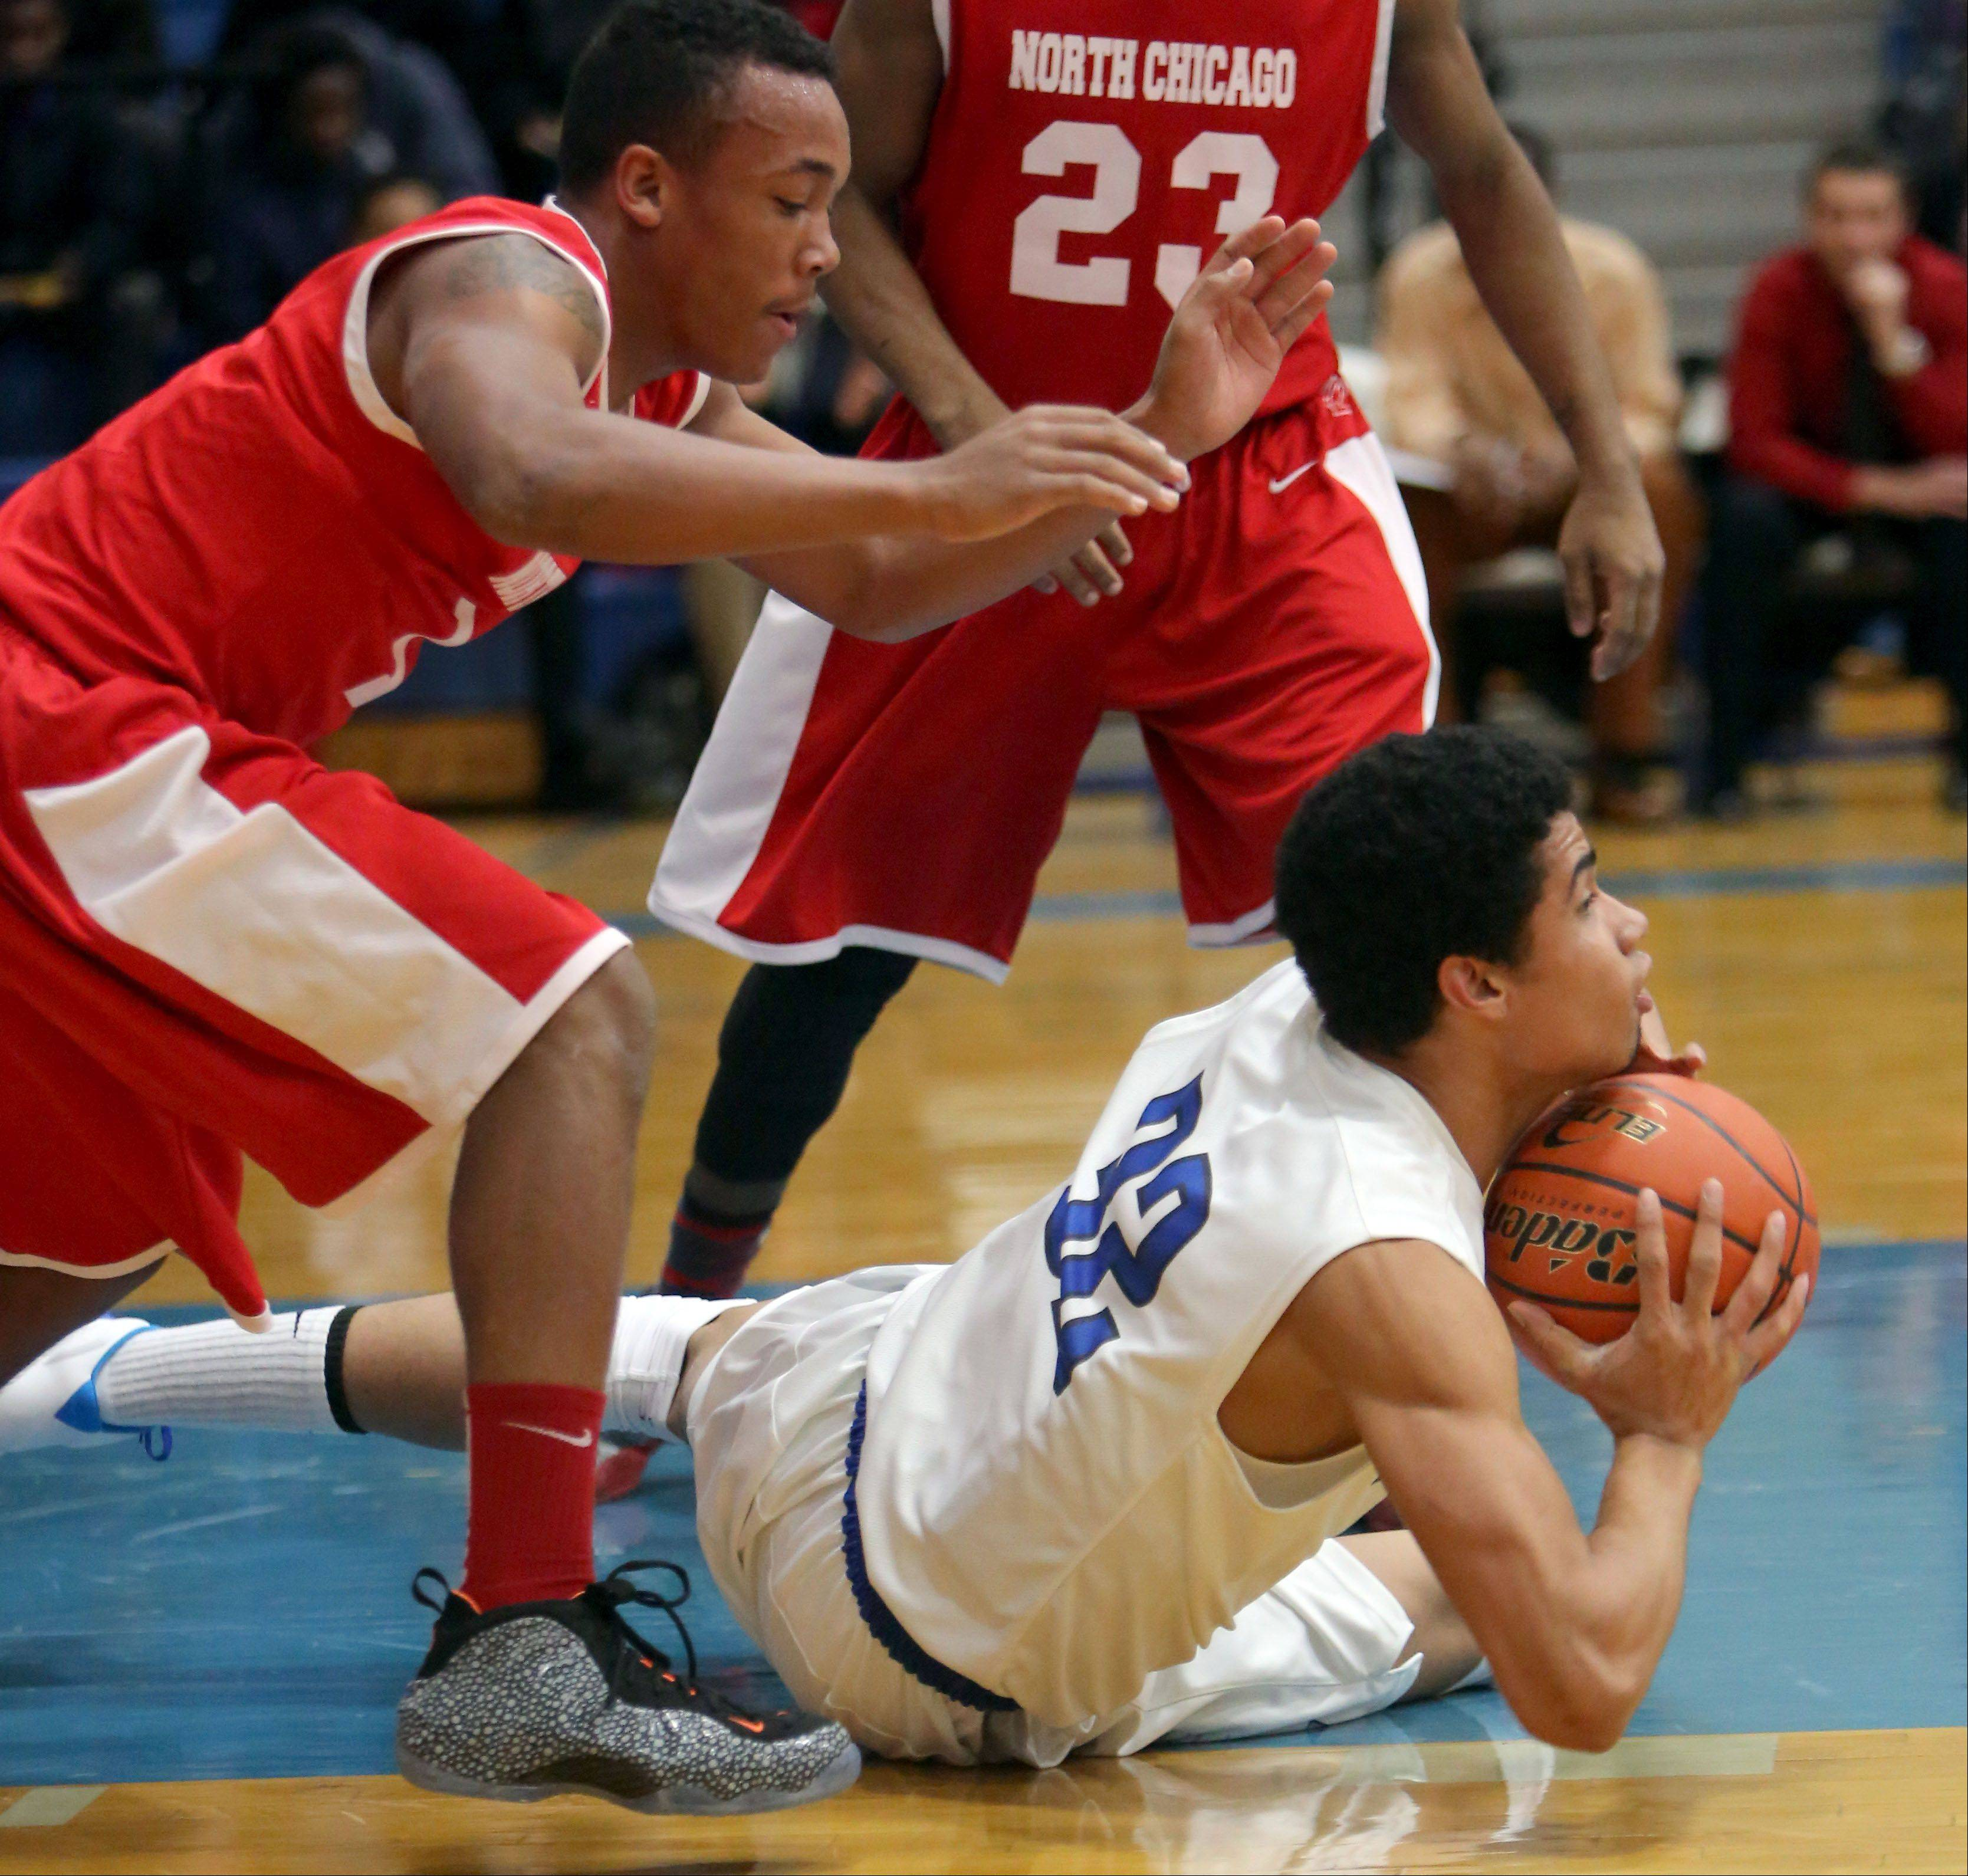 Vernon Hills' Lem Turner, right, battles for a rebound with North Chicago's Arnold Shead on Tuesday night in Vernon Hills.